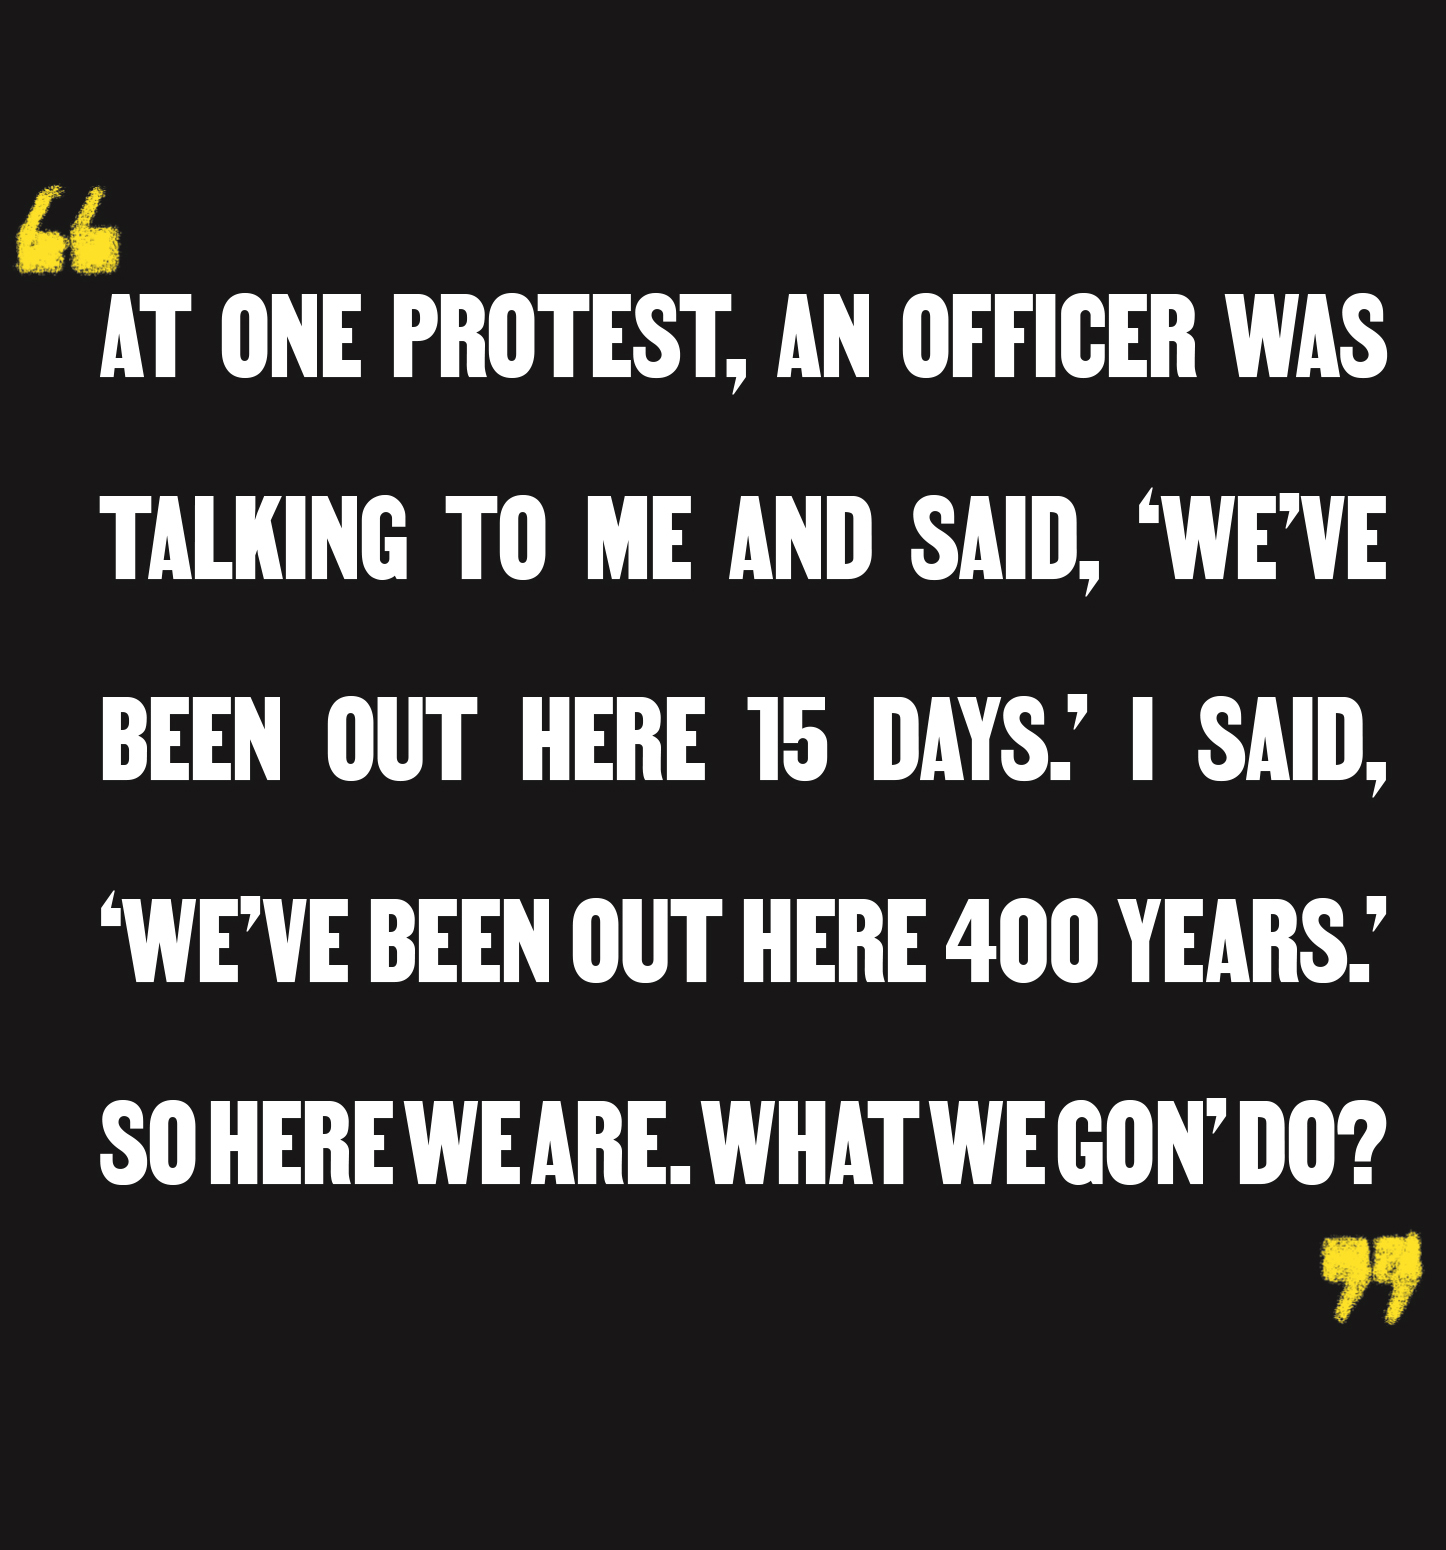 """At one protest, an officer was talking to me and said, 'We've been out here 15 days.' I said, 'We've been out here 400 years.' So here we are. What we gon' do?"""